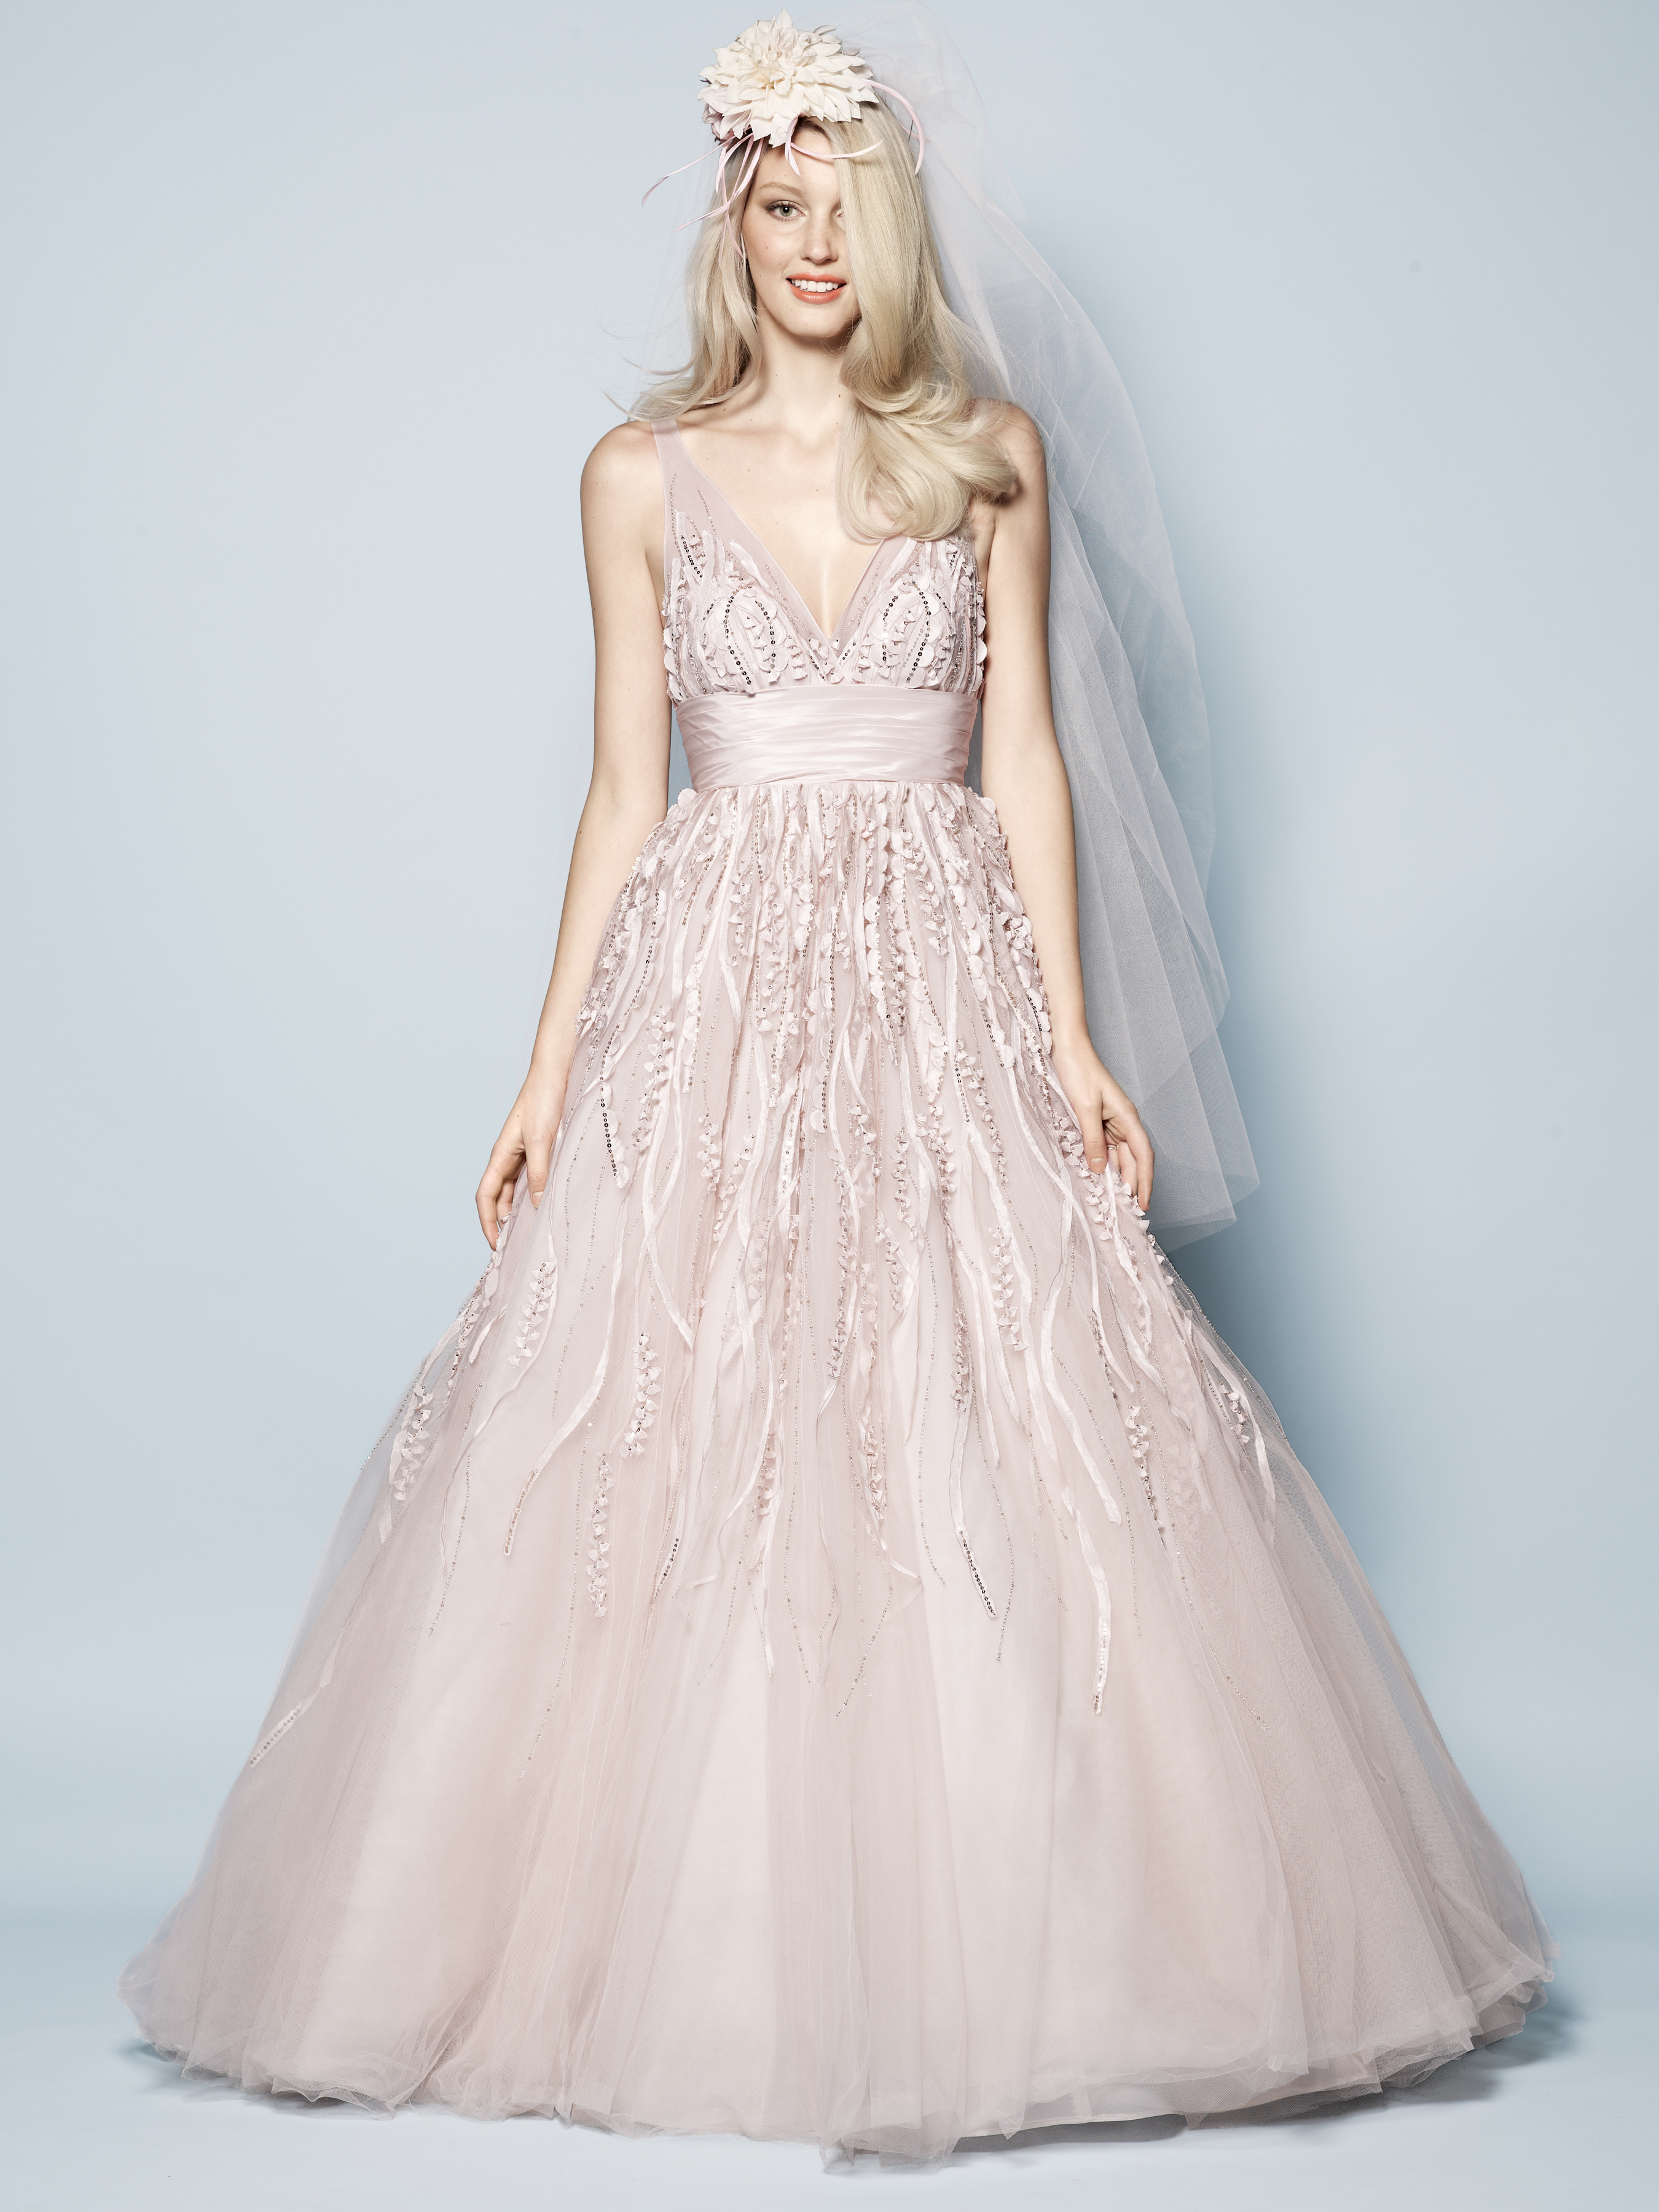 Pretty in pink 8 pink wedding dresses to pine over Ireland s